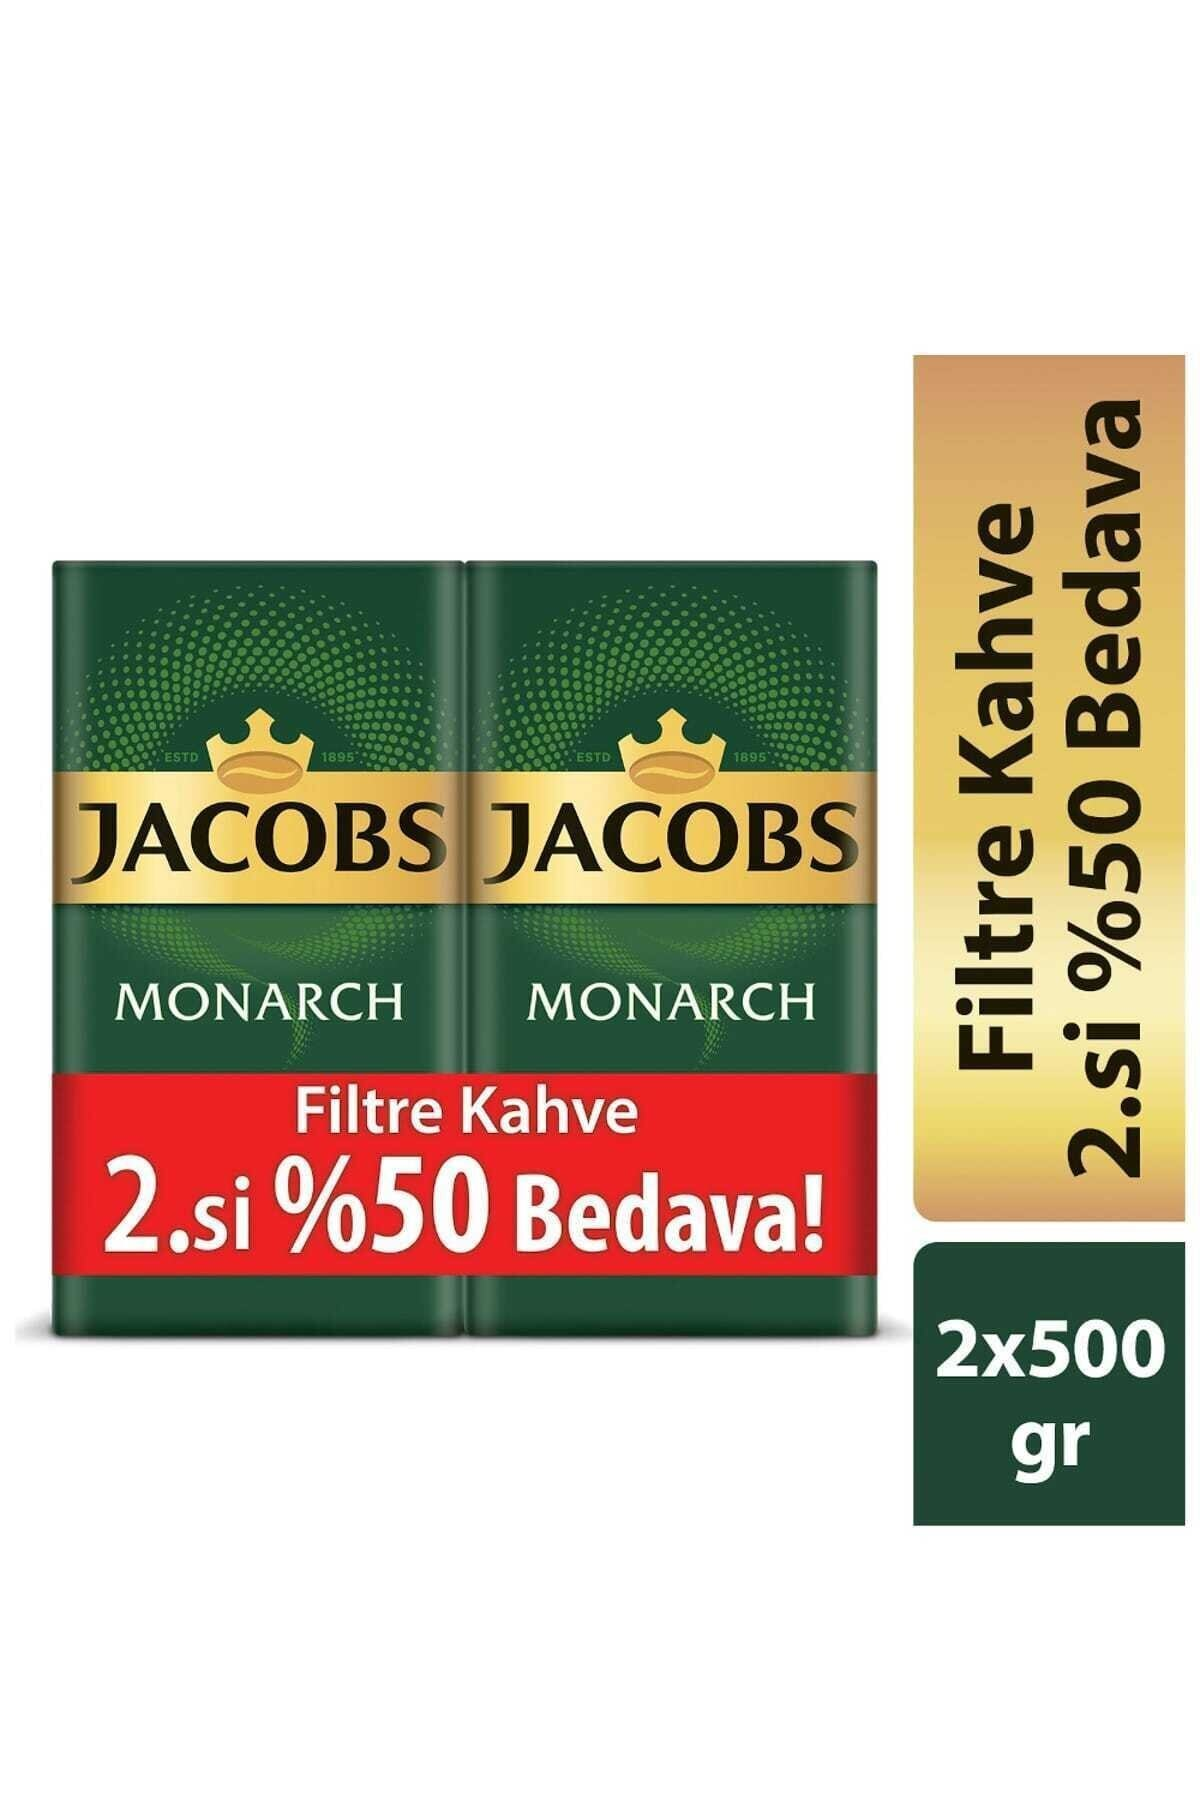 Jacobs Monarch Filtre Kahve 2 X 500 Gr 1